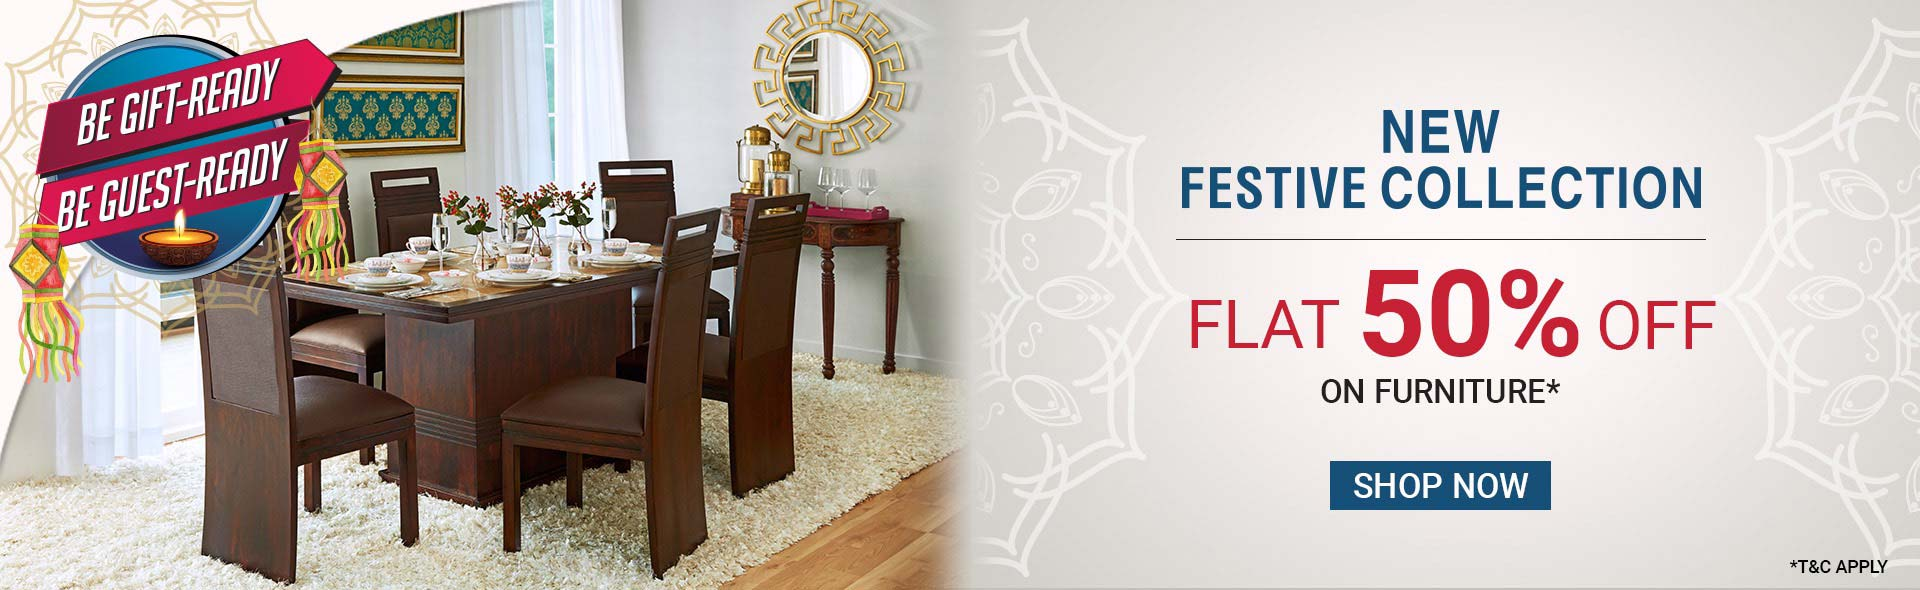 Festive Collection Furniture